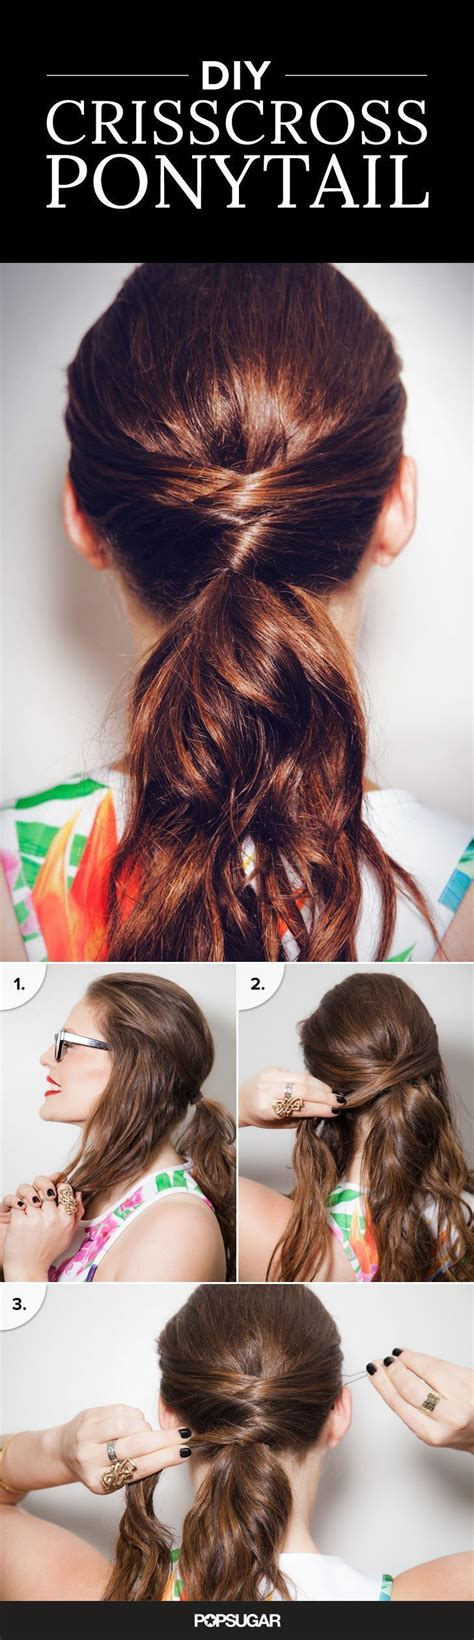 792 best hair tutorials images on pinterest 77 best images about ponytail hairstyles on pinterest